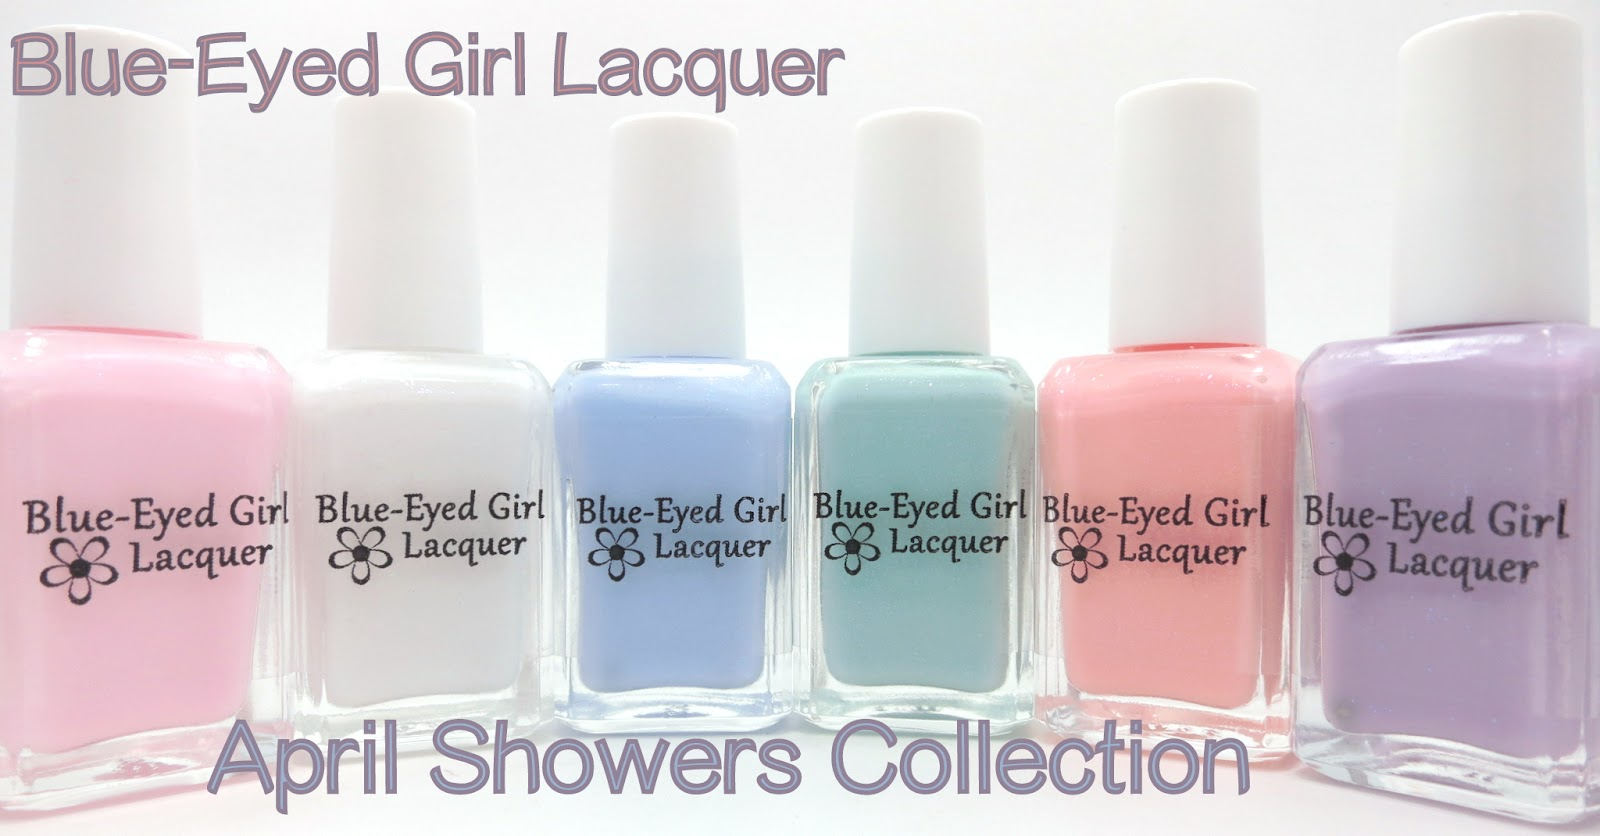 Blue-Eyed Girl Lacquer April Showers Collection